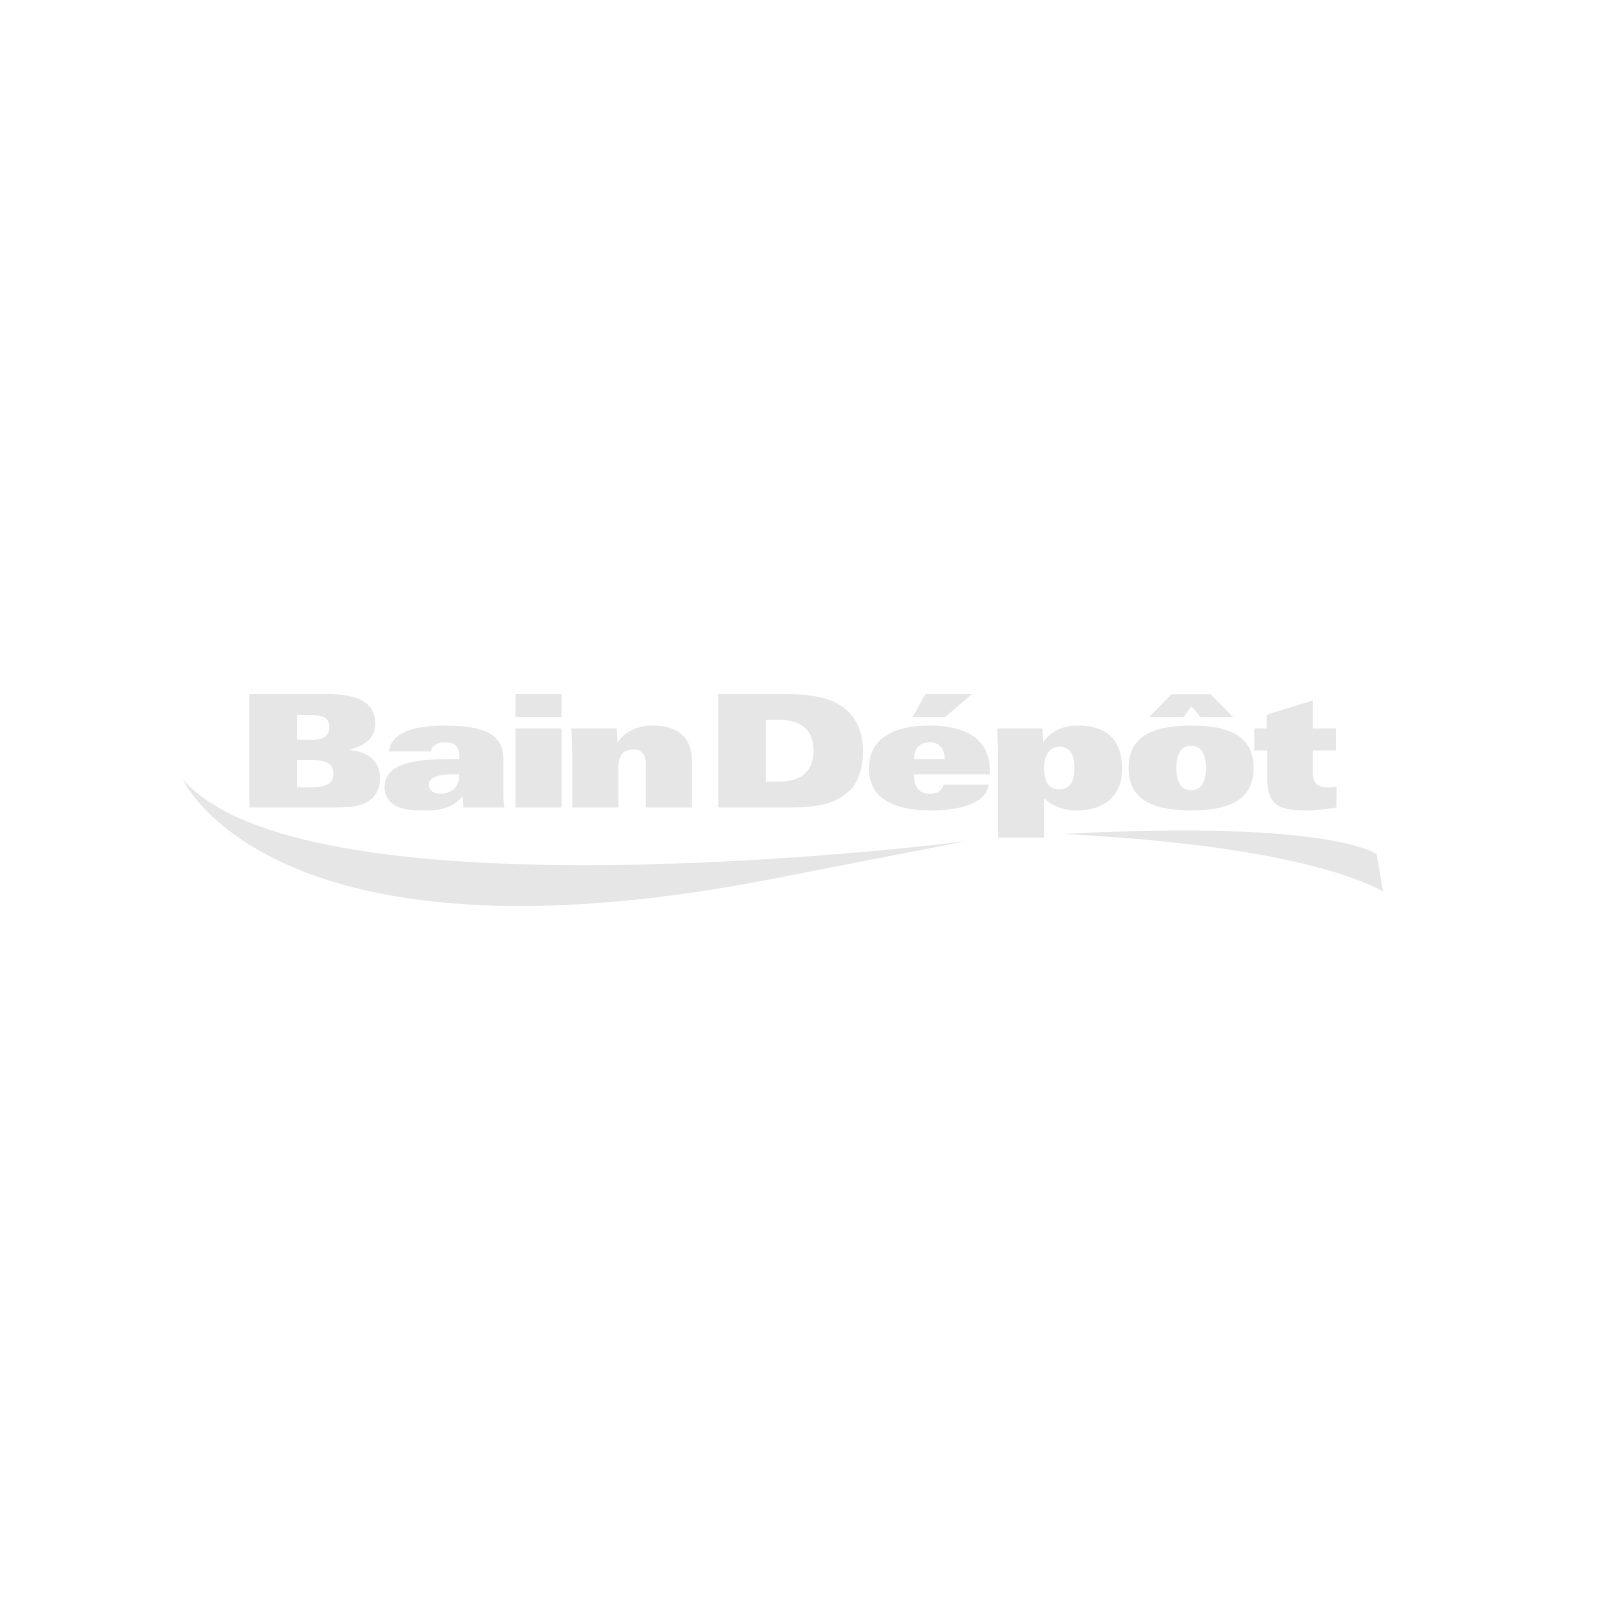 6-Piece bamboo bathroom accessory set